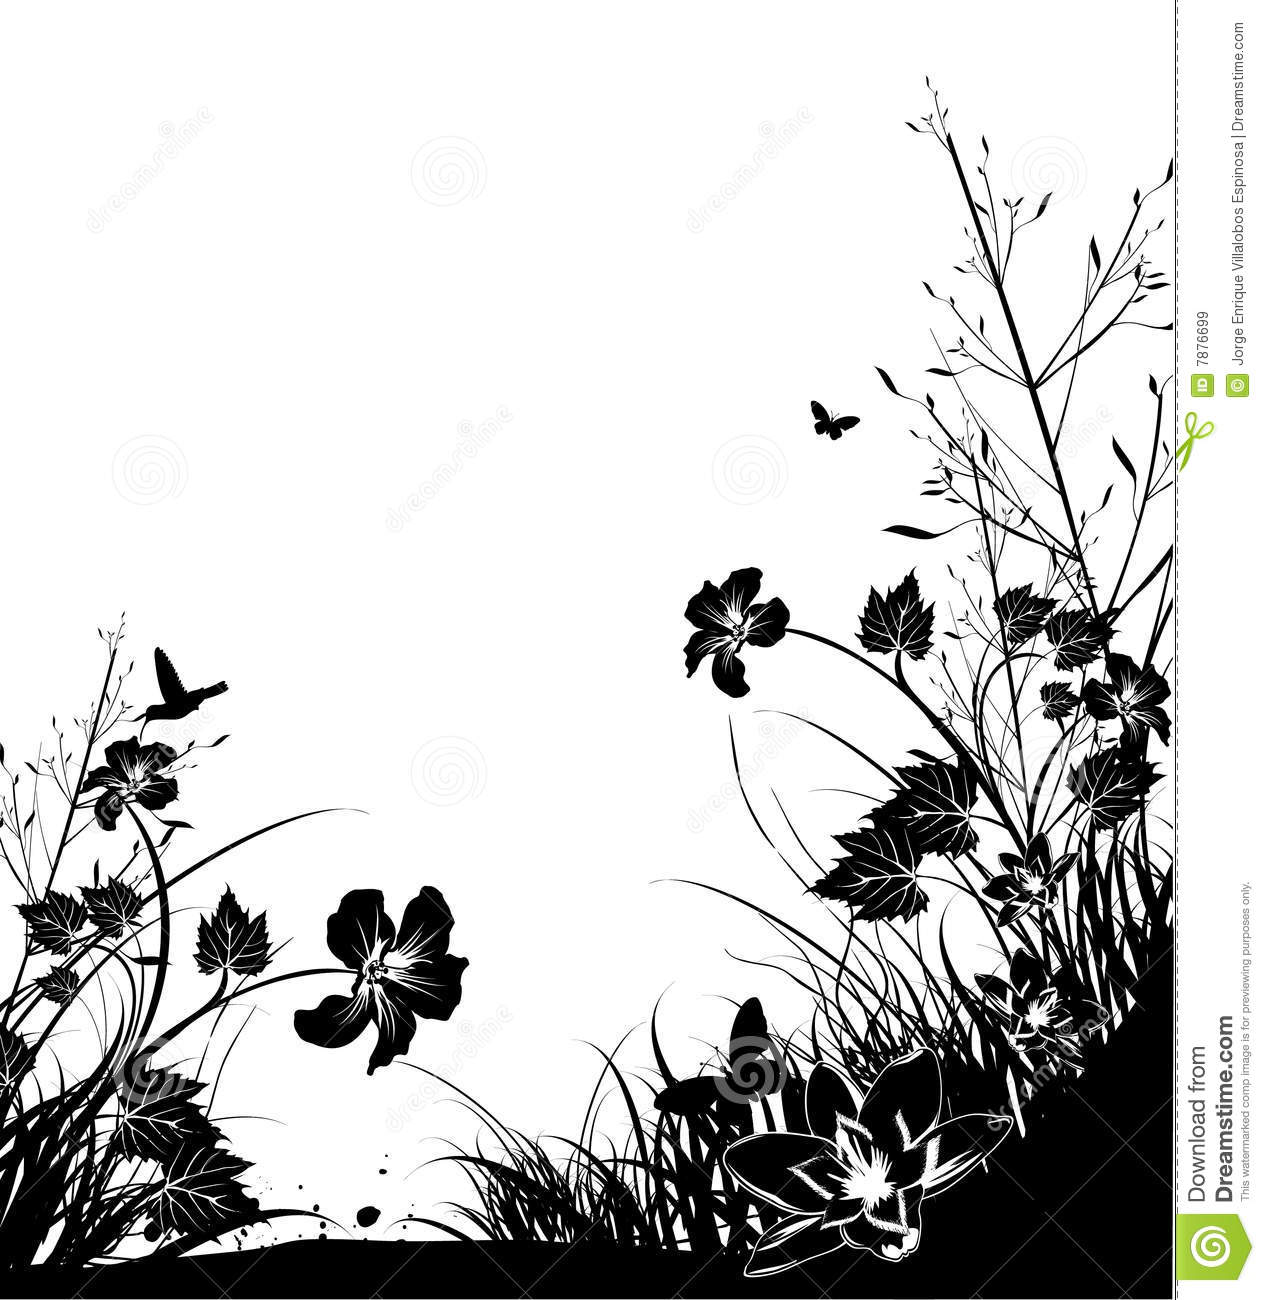 Black and white nature stock vector illustration of black 7876699 black and white nature bush design voltagebd Images